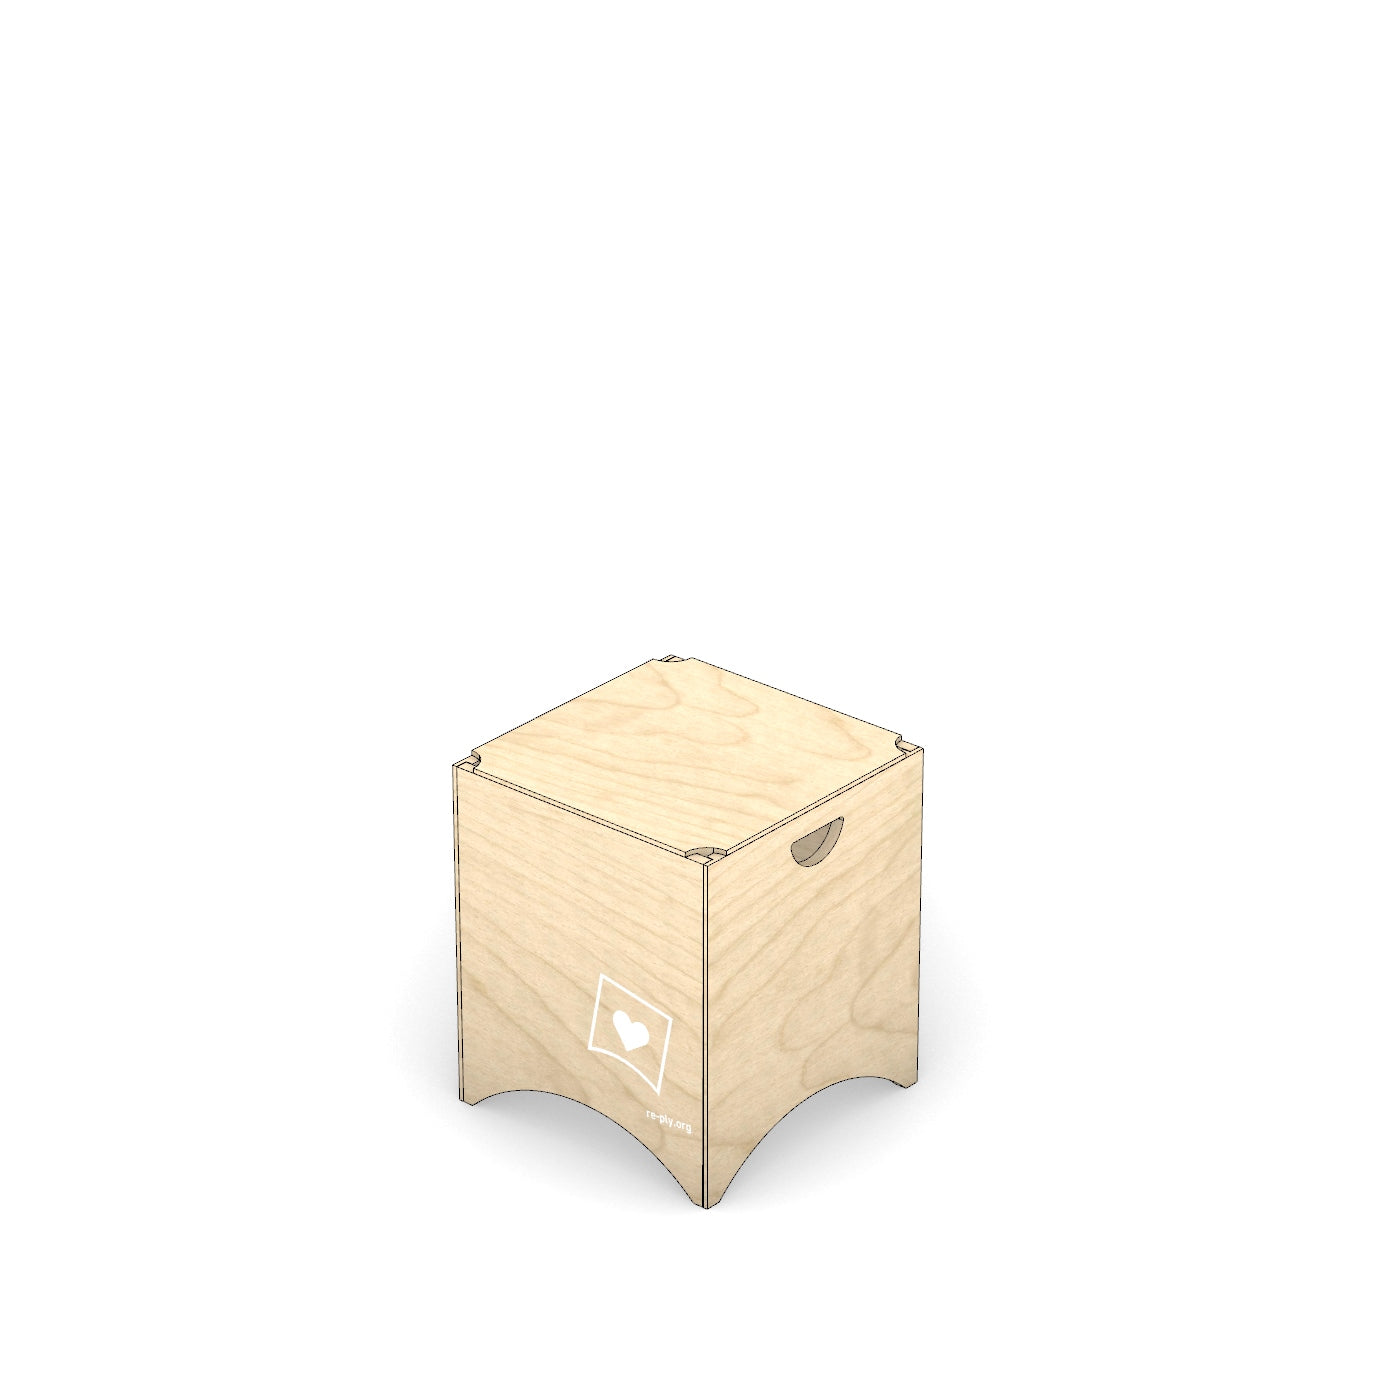 Stool - Standard Size - from $66 - In Stock